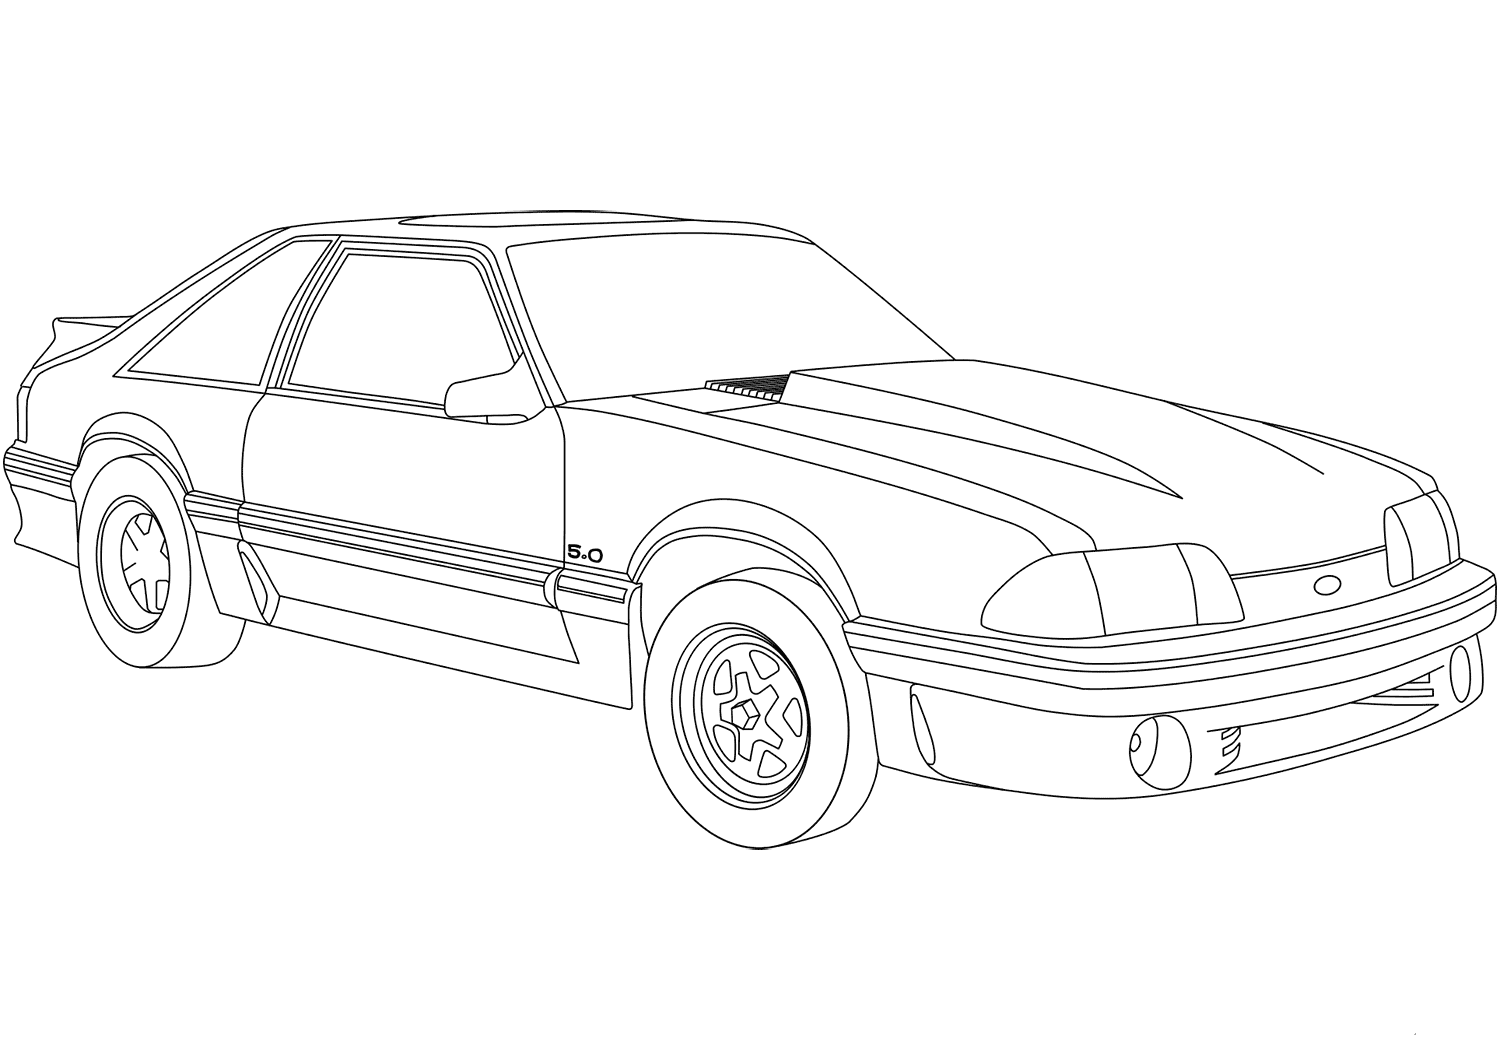 Ford Mustang Coloring Pages